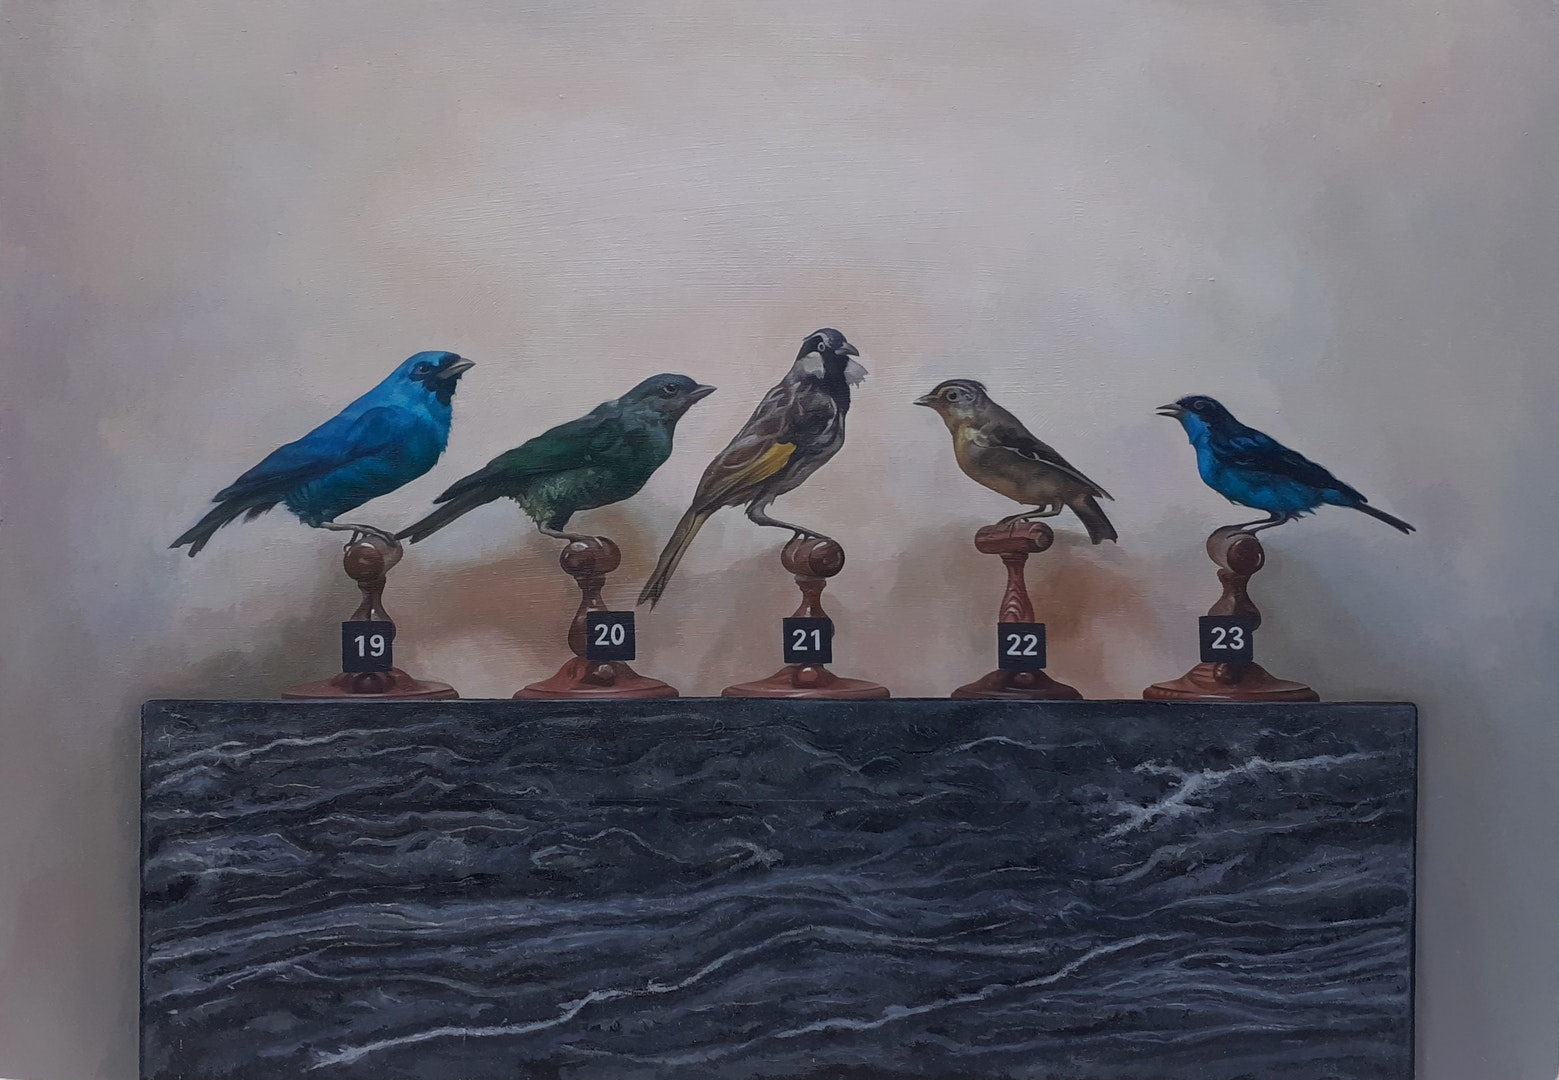 'When your Numbers Up', Stephen Earl Rogers, Oil on Board, 27.5 x 39.5 cm